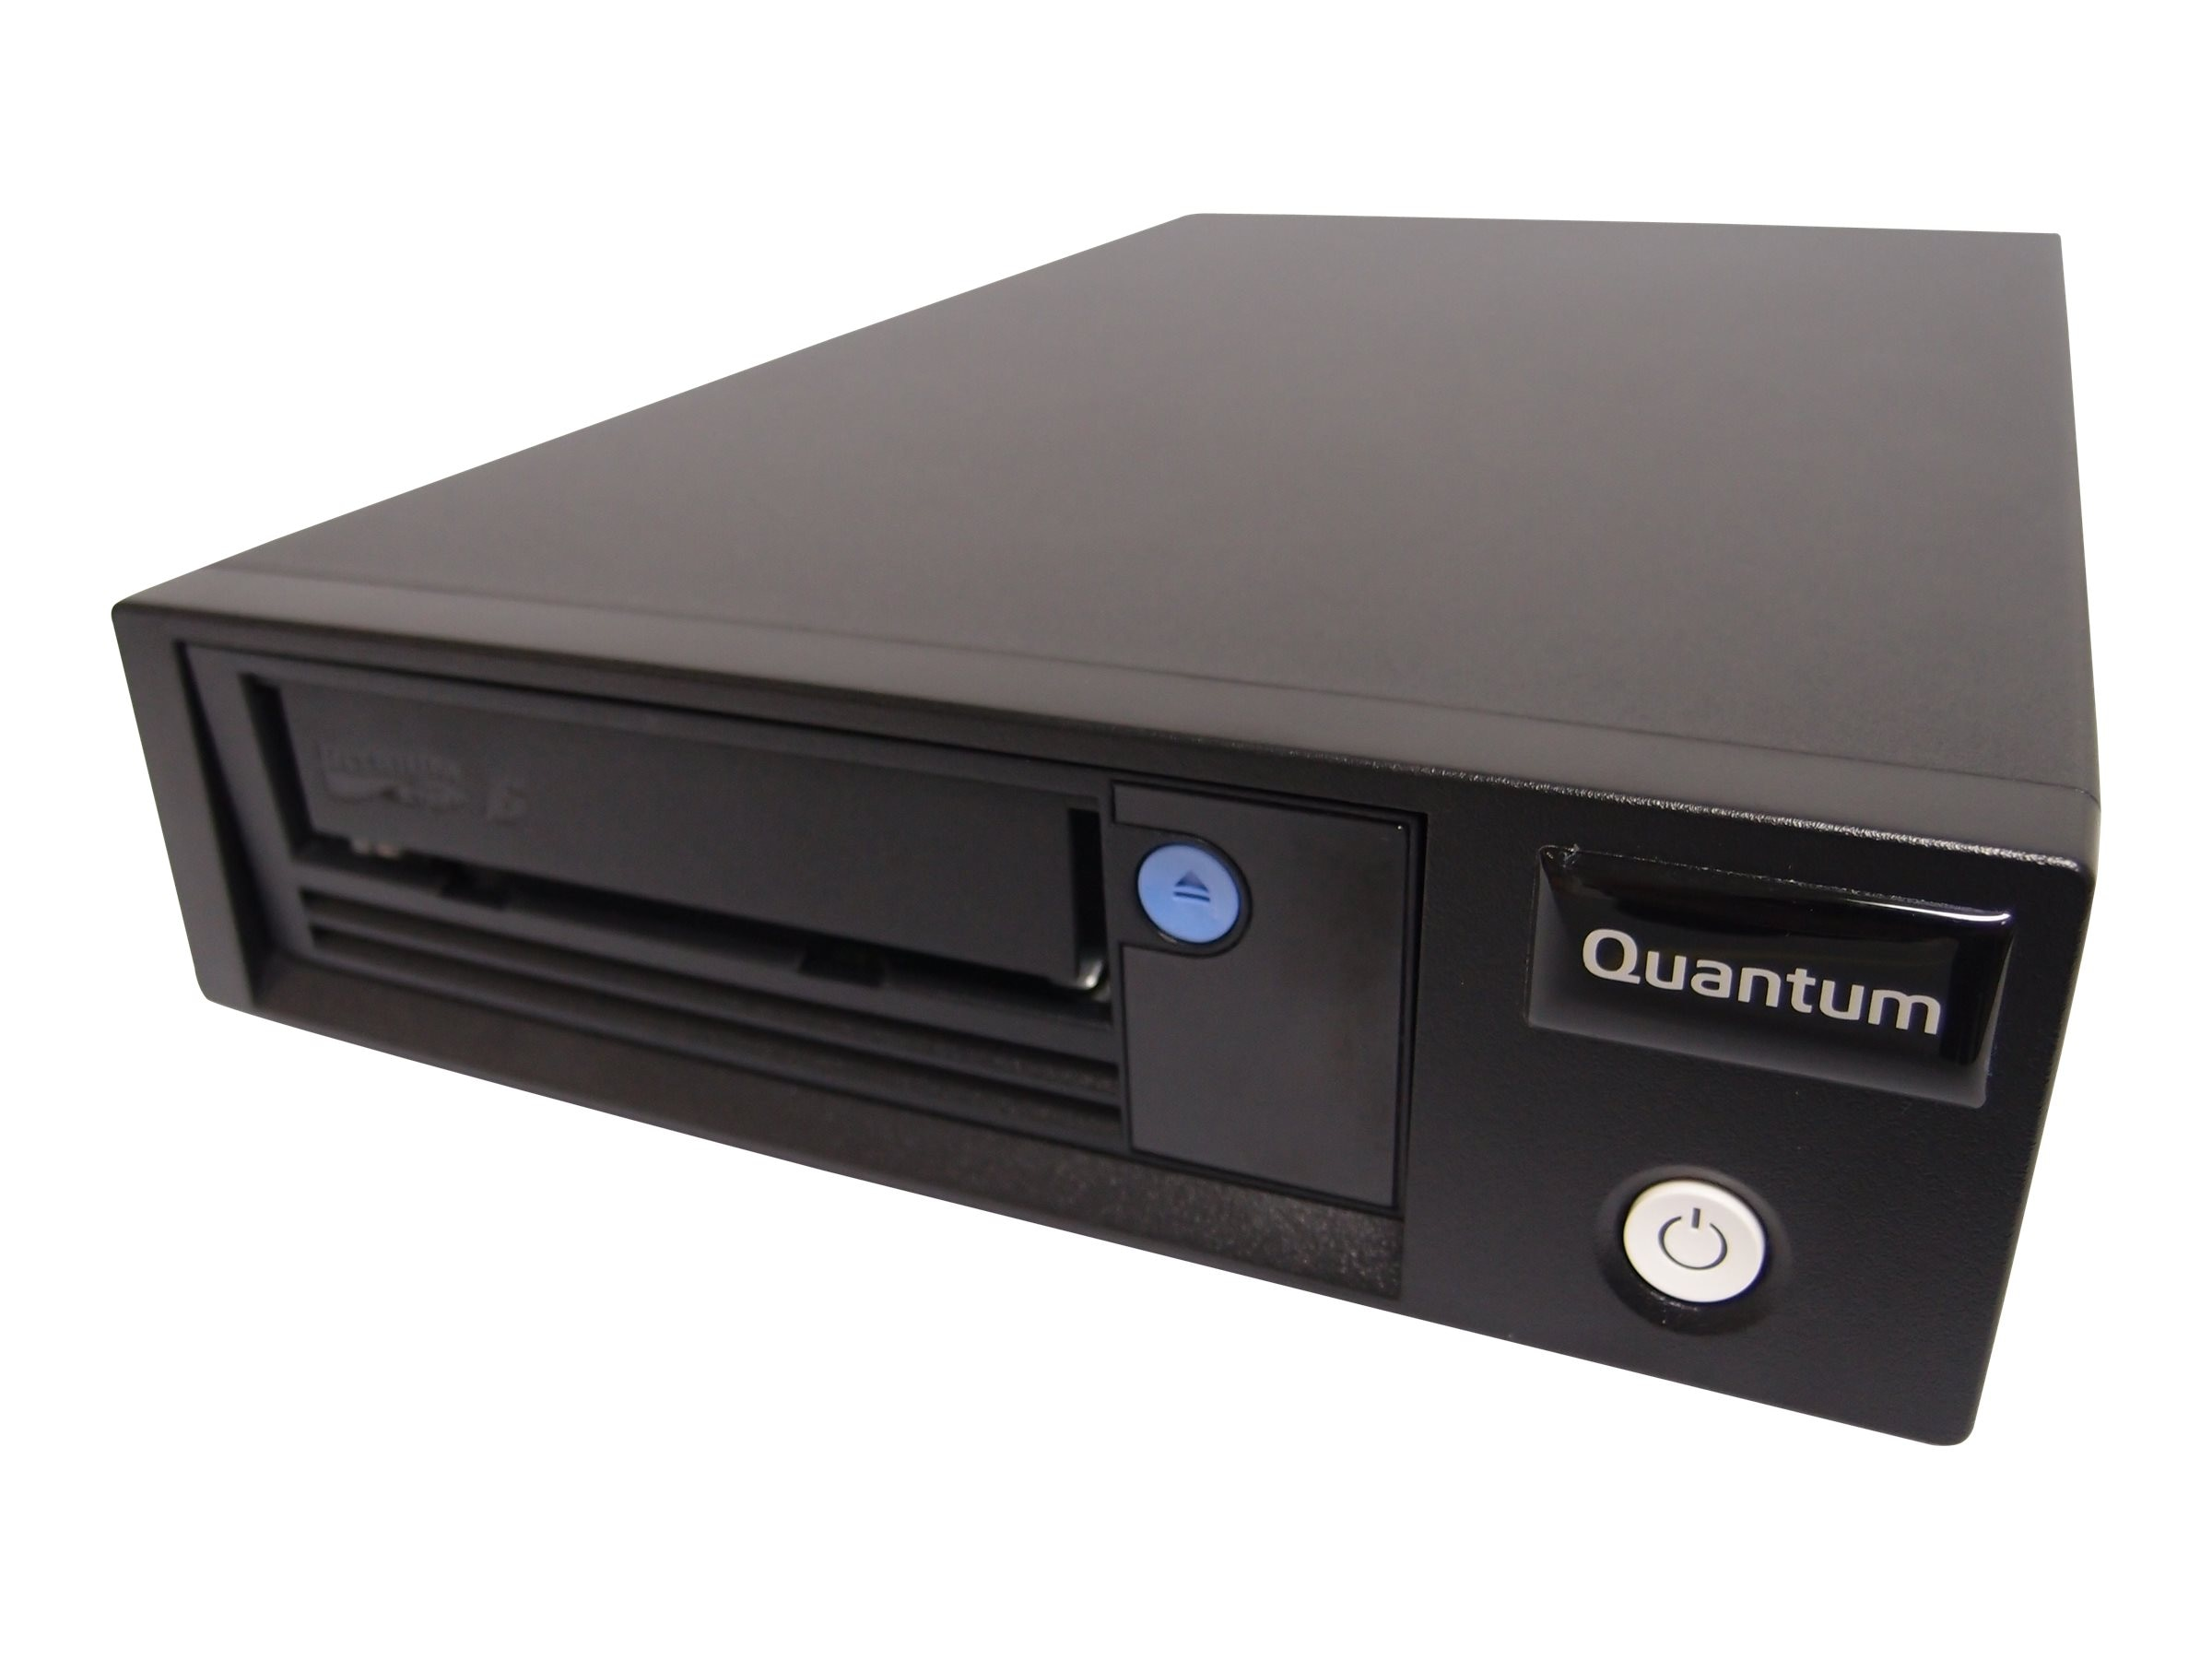 Quantum LTO-6 HH SAS 6Gb s Model C Tabletop Tape Drive - Black